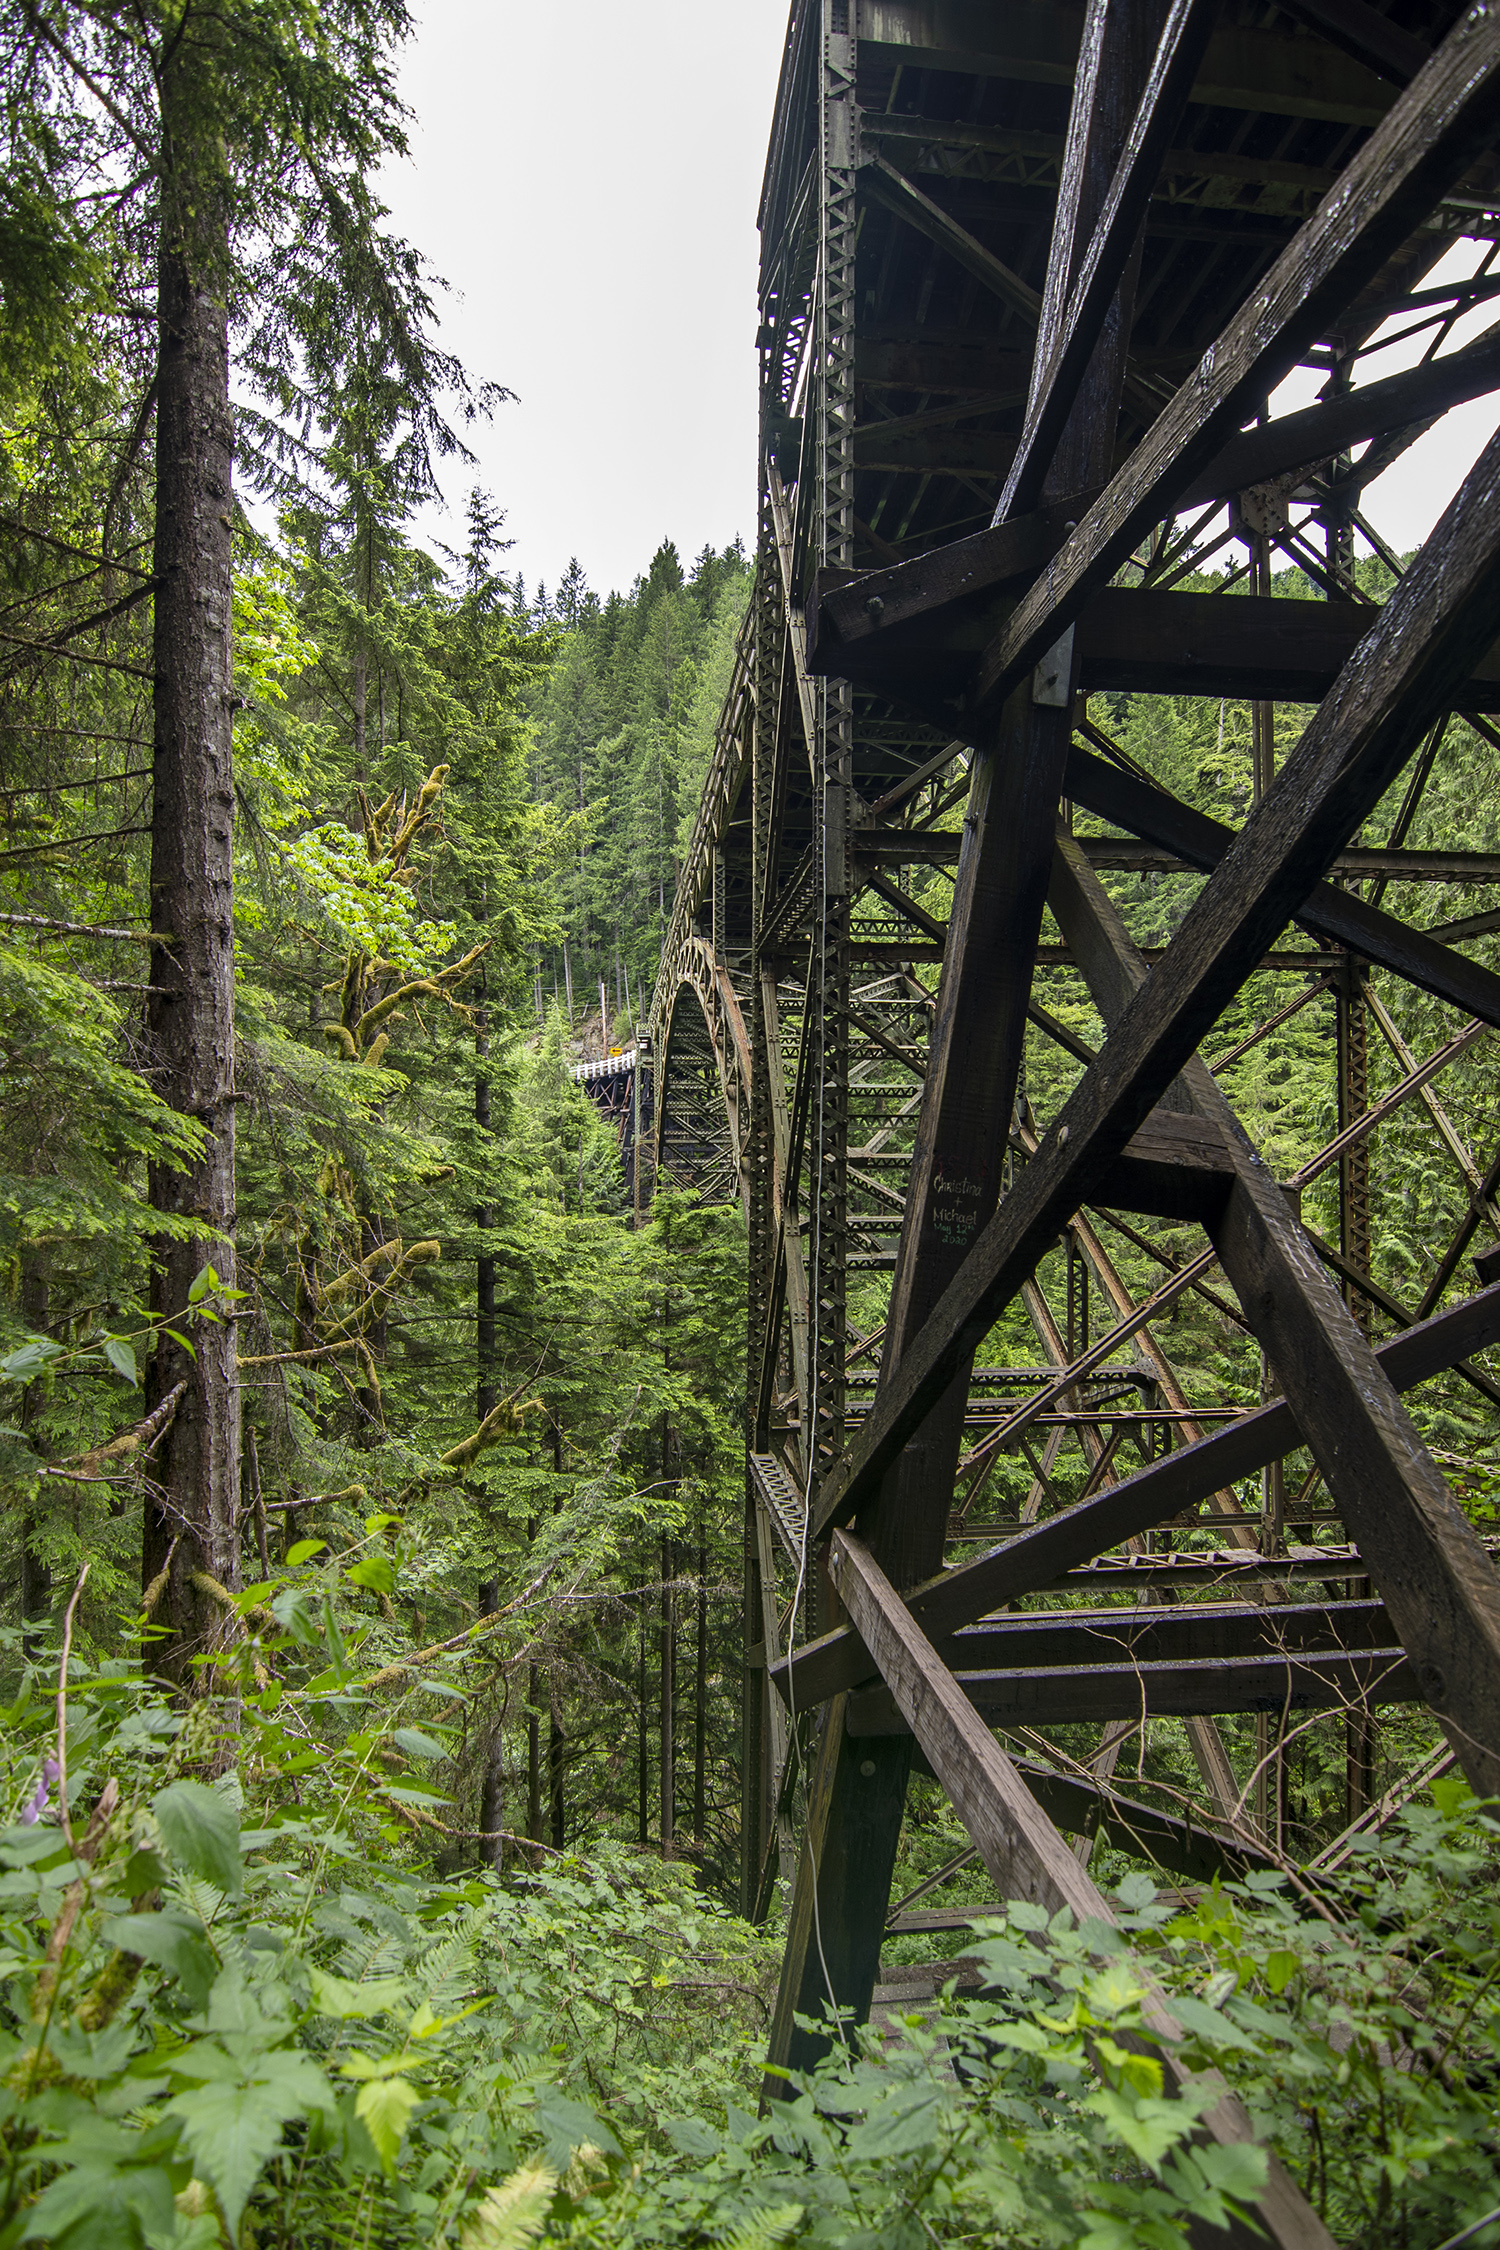 Fairfax Bridge.{ } As one of the three remaining three-hinged arch bridges in Washington state, the Fairfax Bridge, built in 1921, is a rare site to see. Get a great viewpoint by taking the Foothills Trail that leads underneath the bridge. (Image:{ }Rachael Jones)